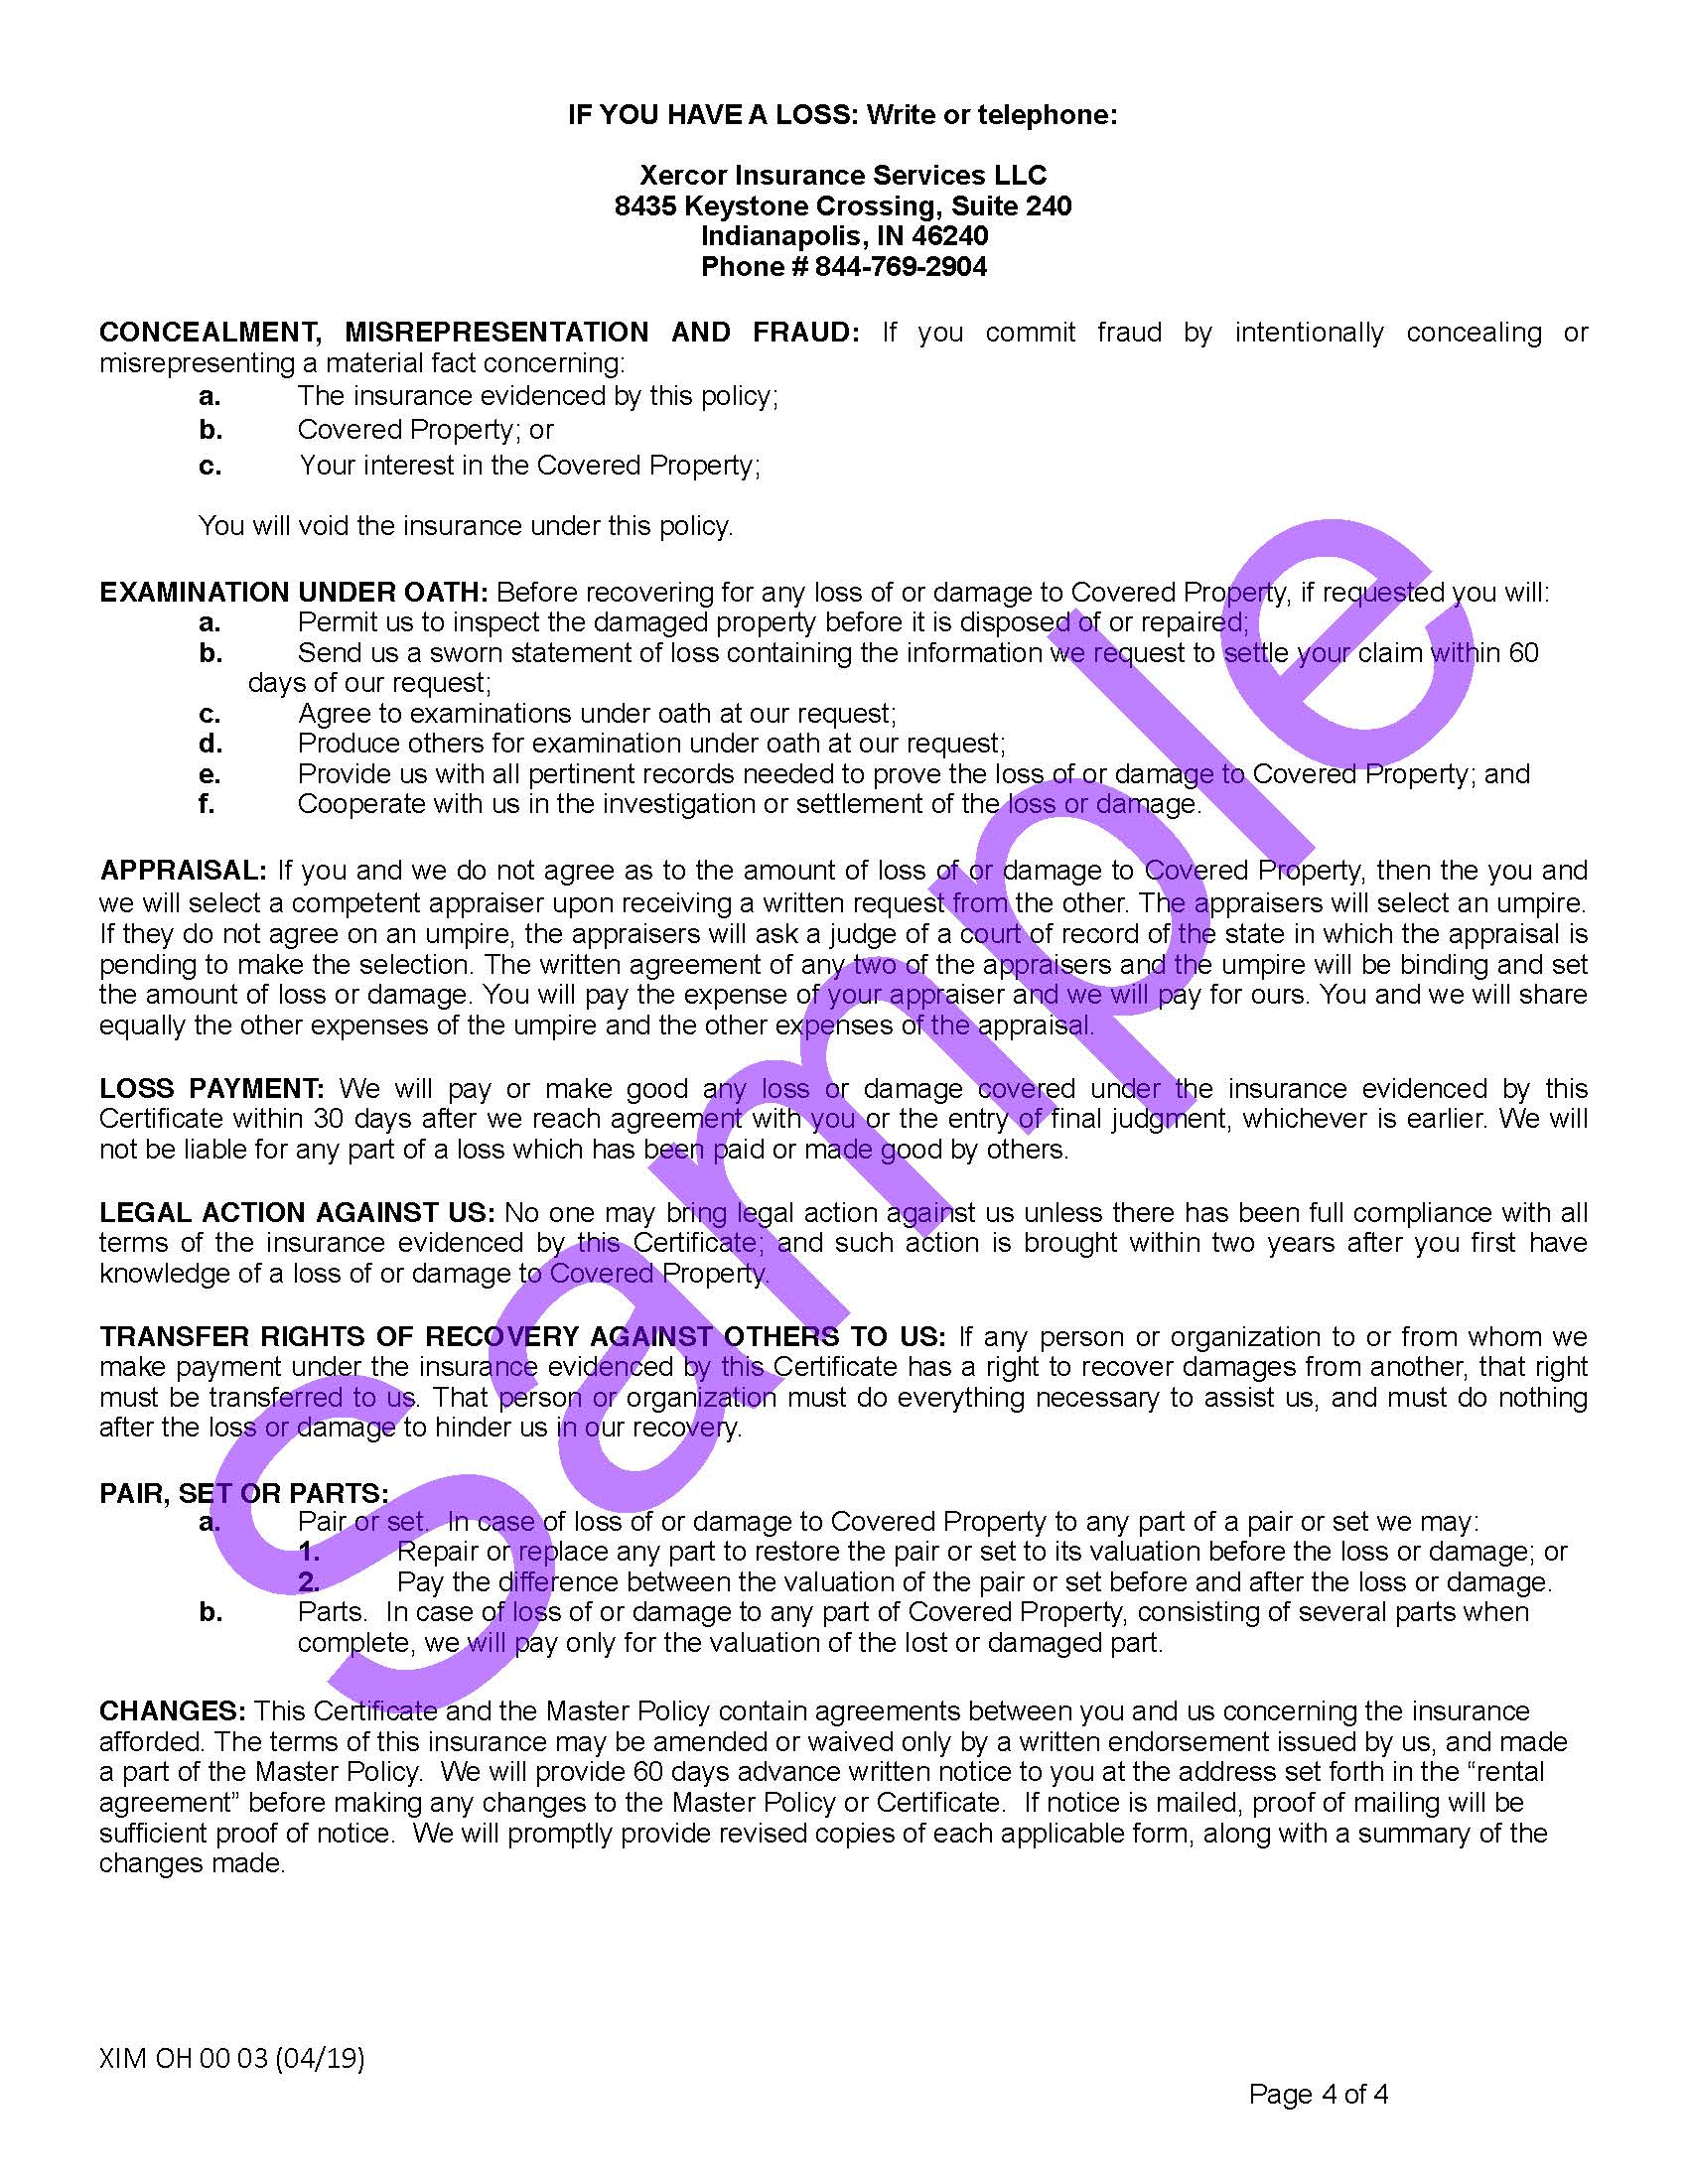 XIM OH 00 03 04 19 Ohio Certificate of InsuranceSample_Page_4.jpg